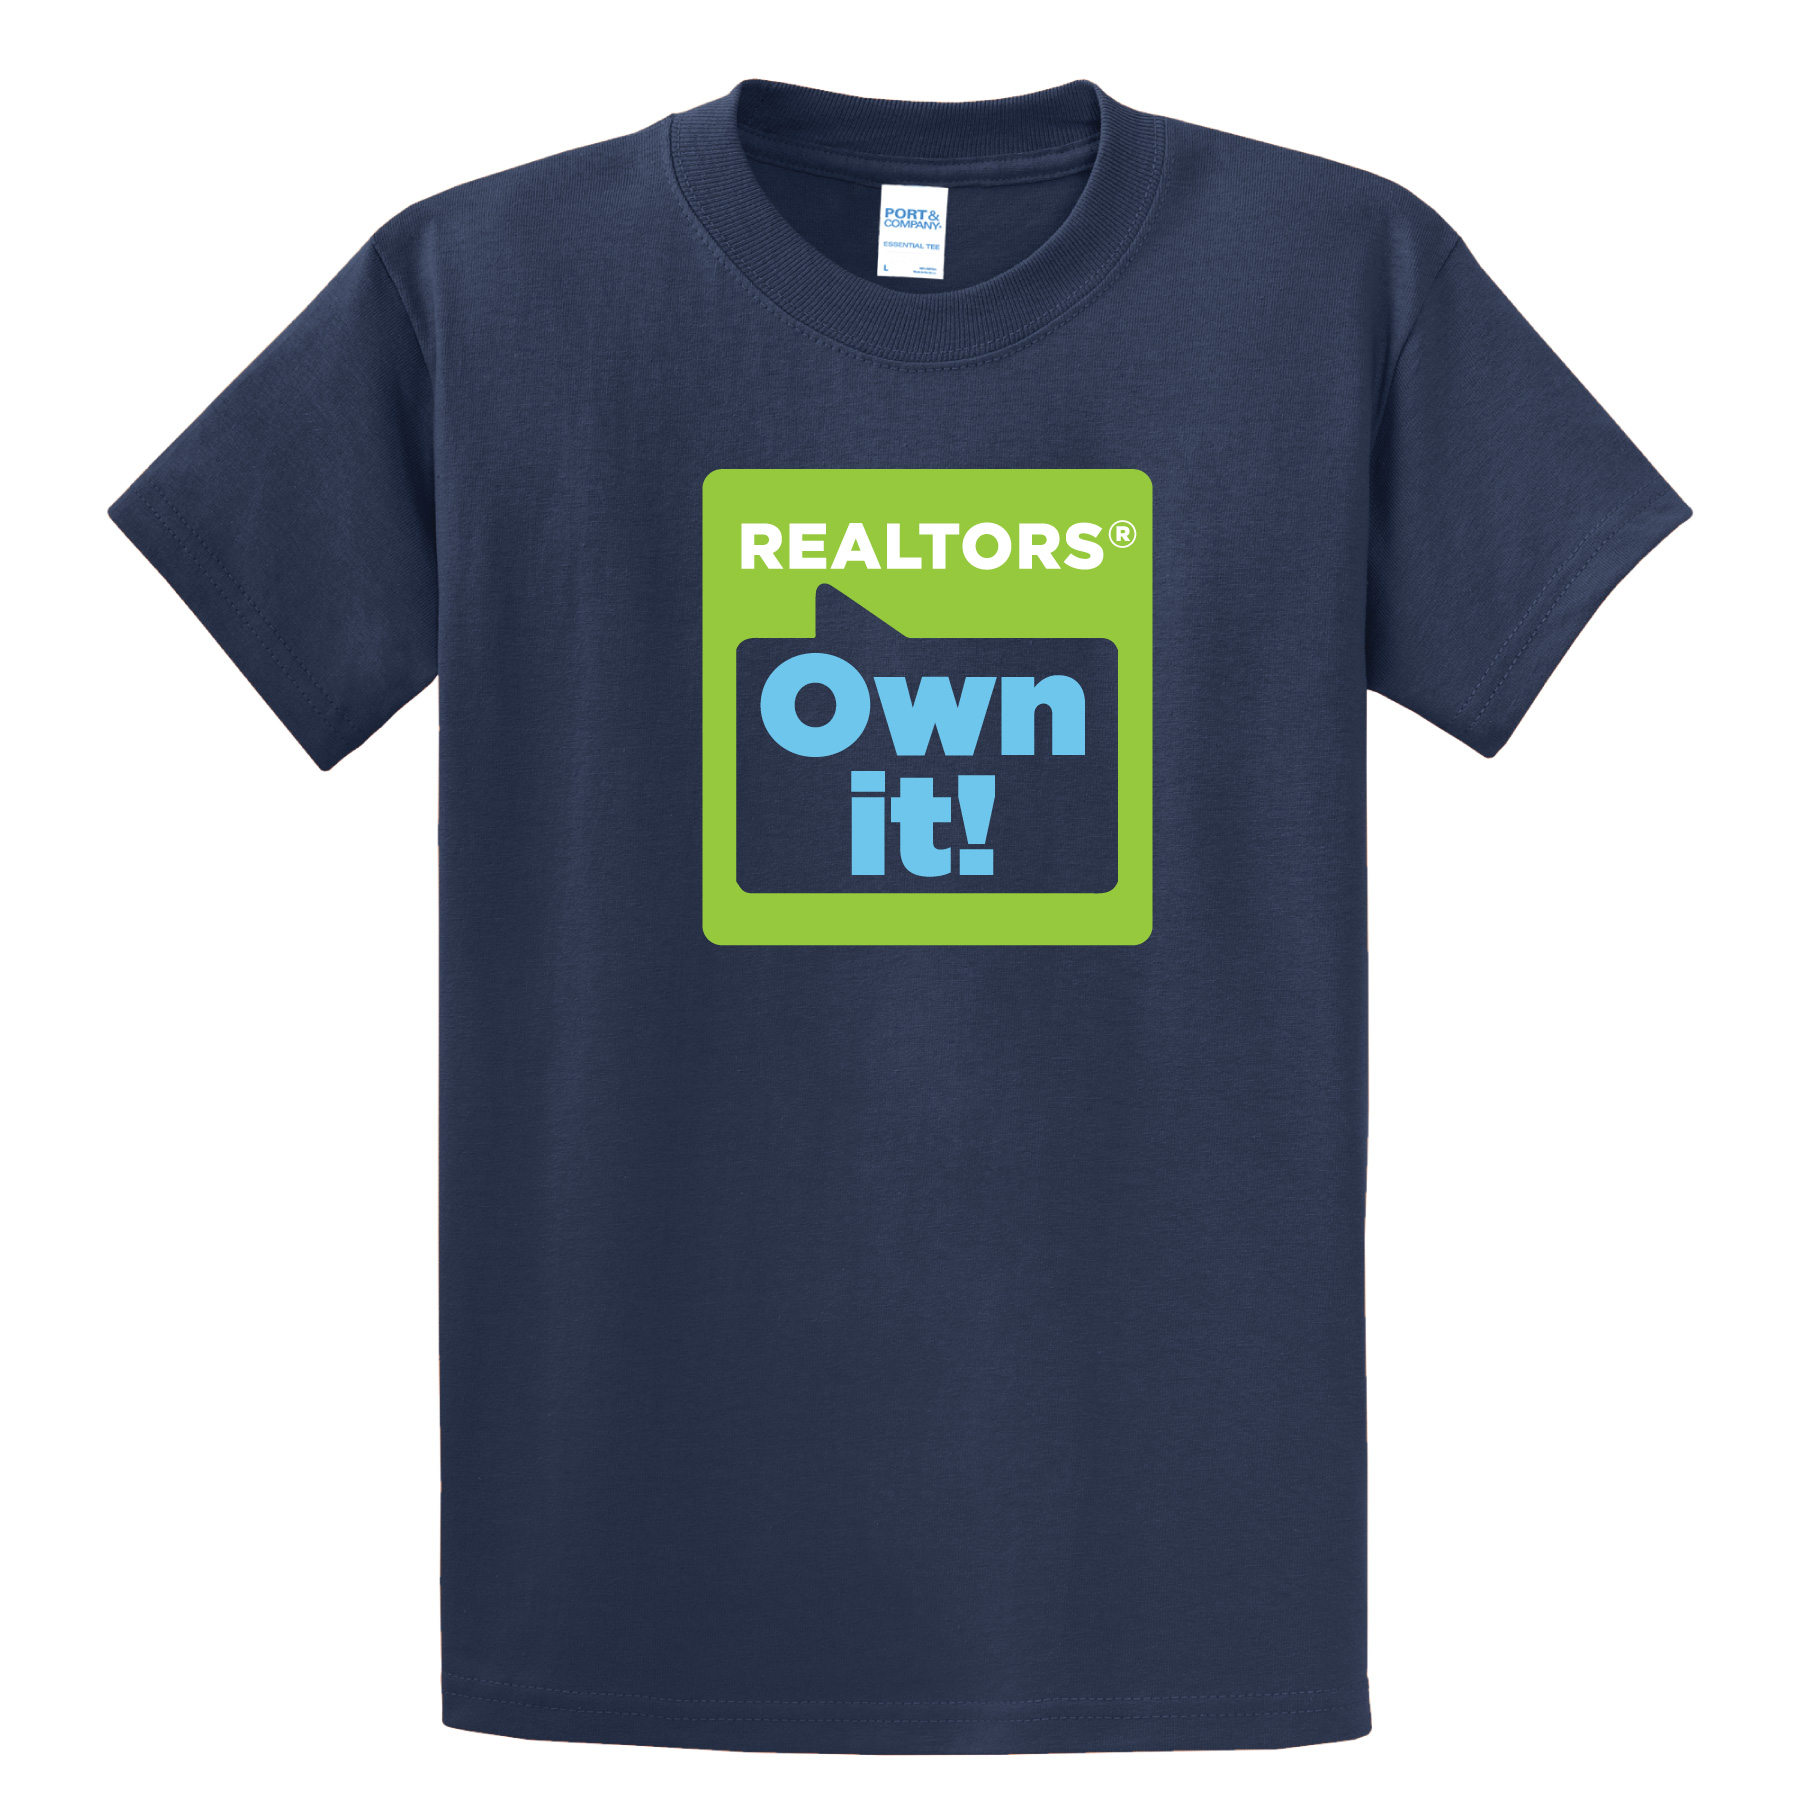 REALTORS® Own It! Tee Shirt Tees,T-shirt,Tee,Casual,Owns,its,ROI